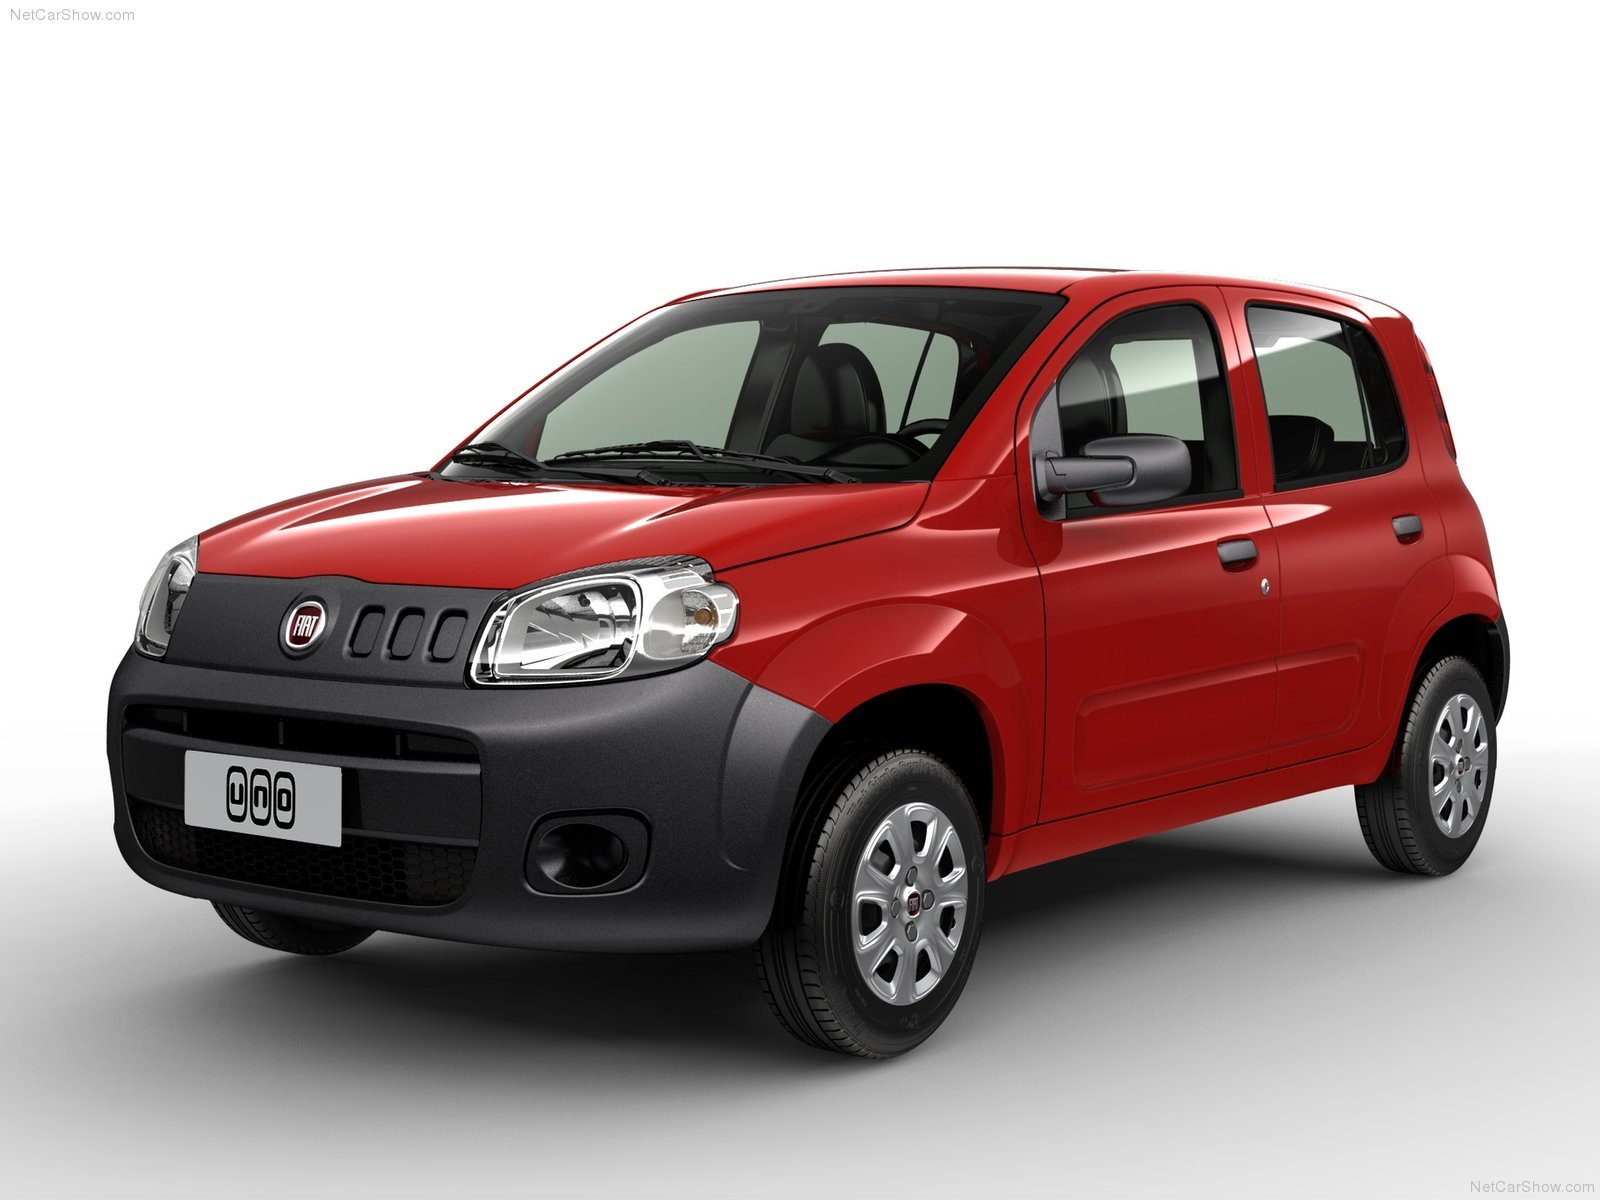 New Fiat Uno 2011 Stills And Photogallery On This Month